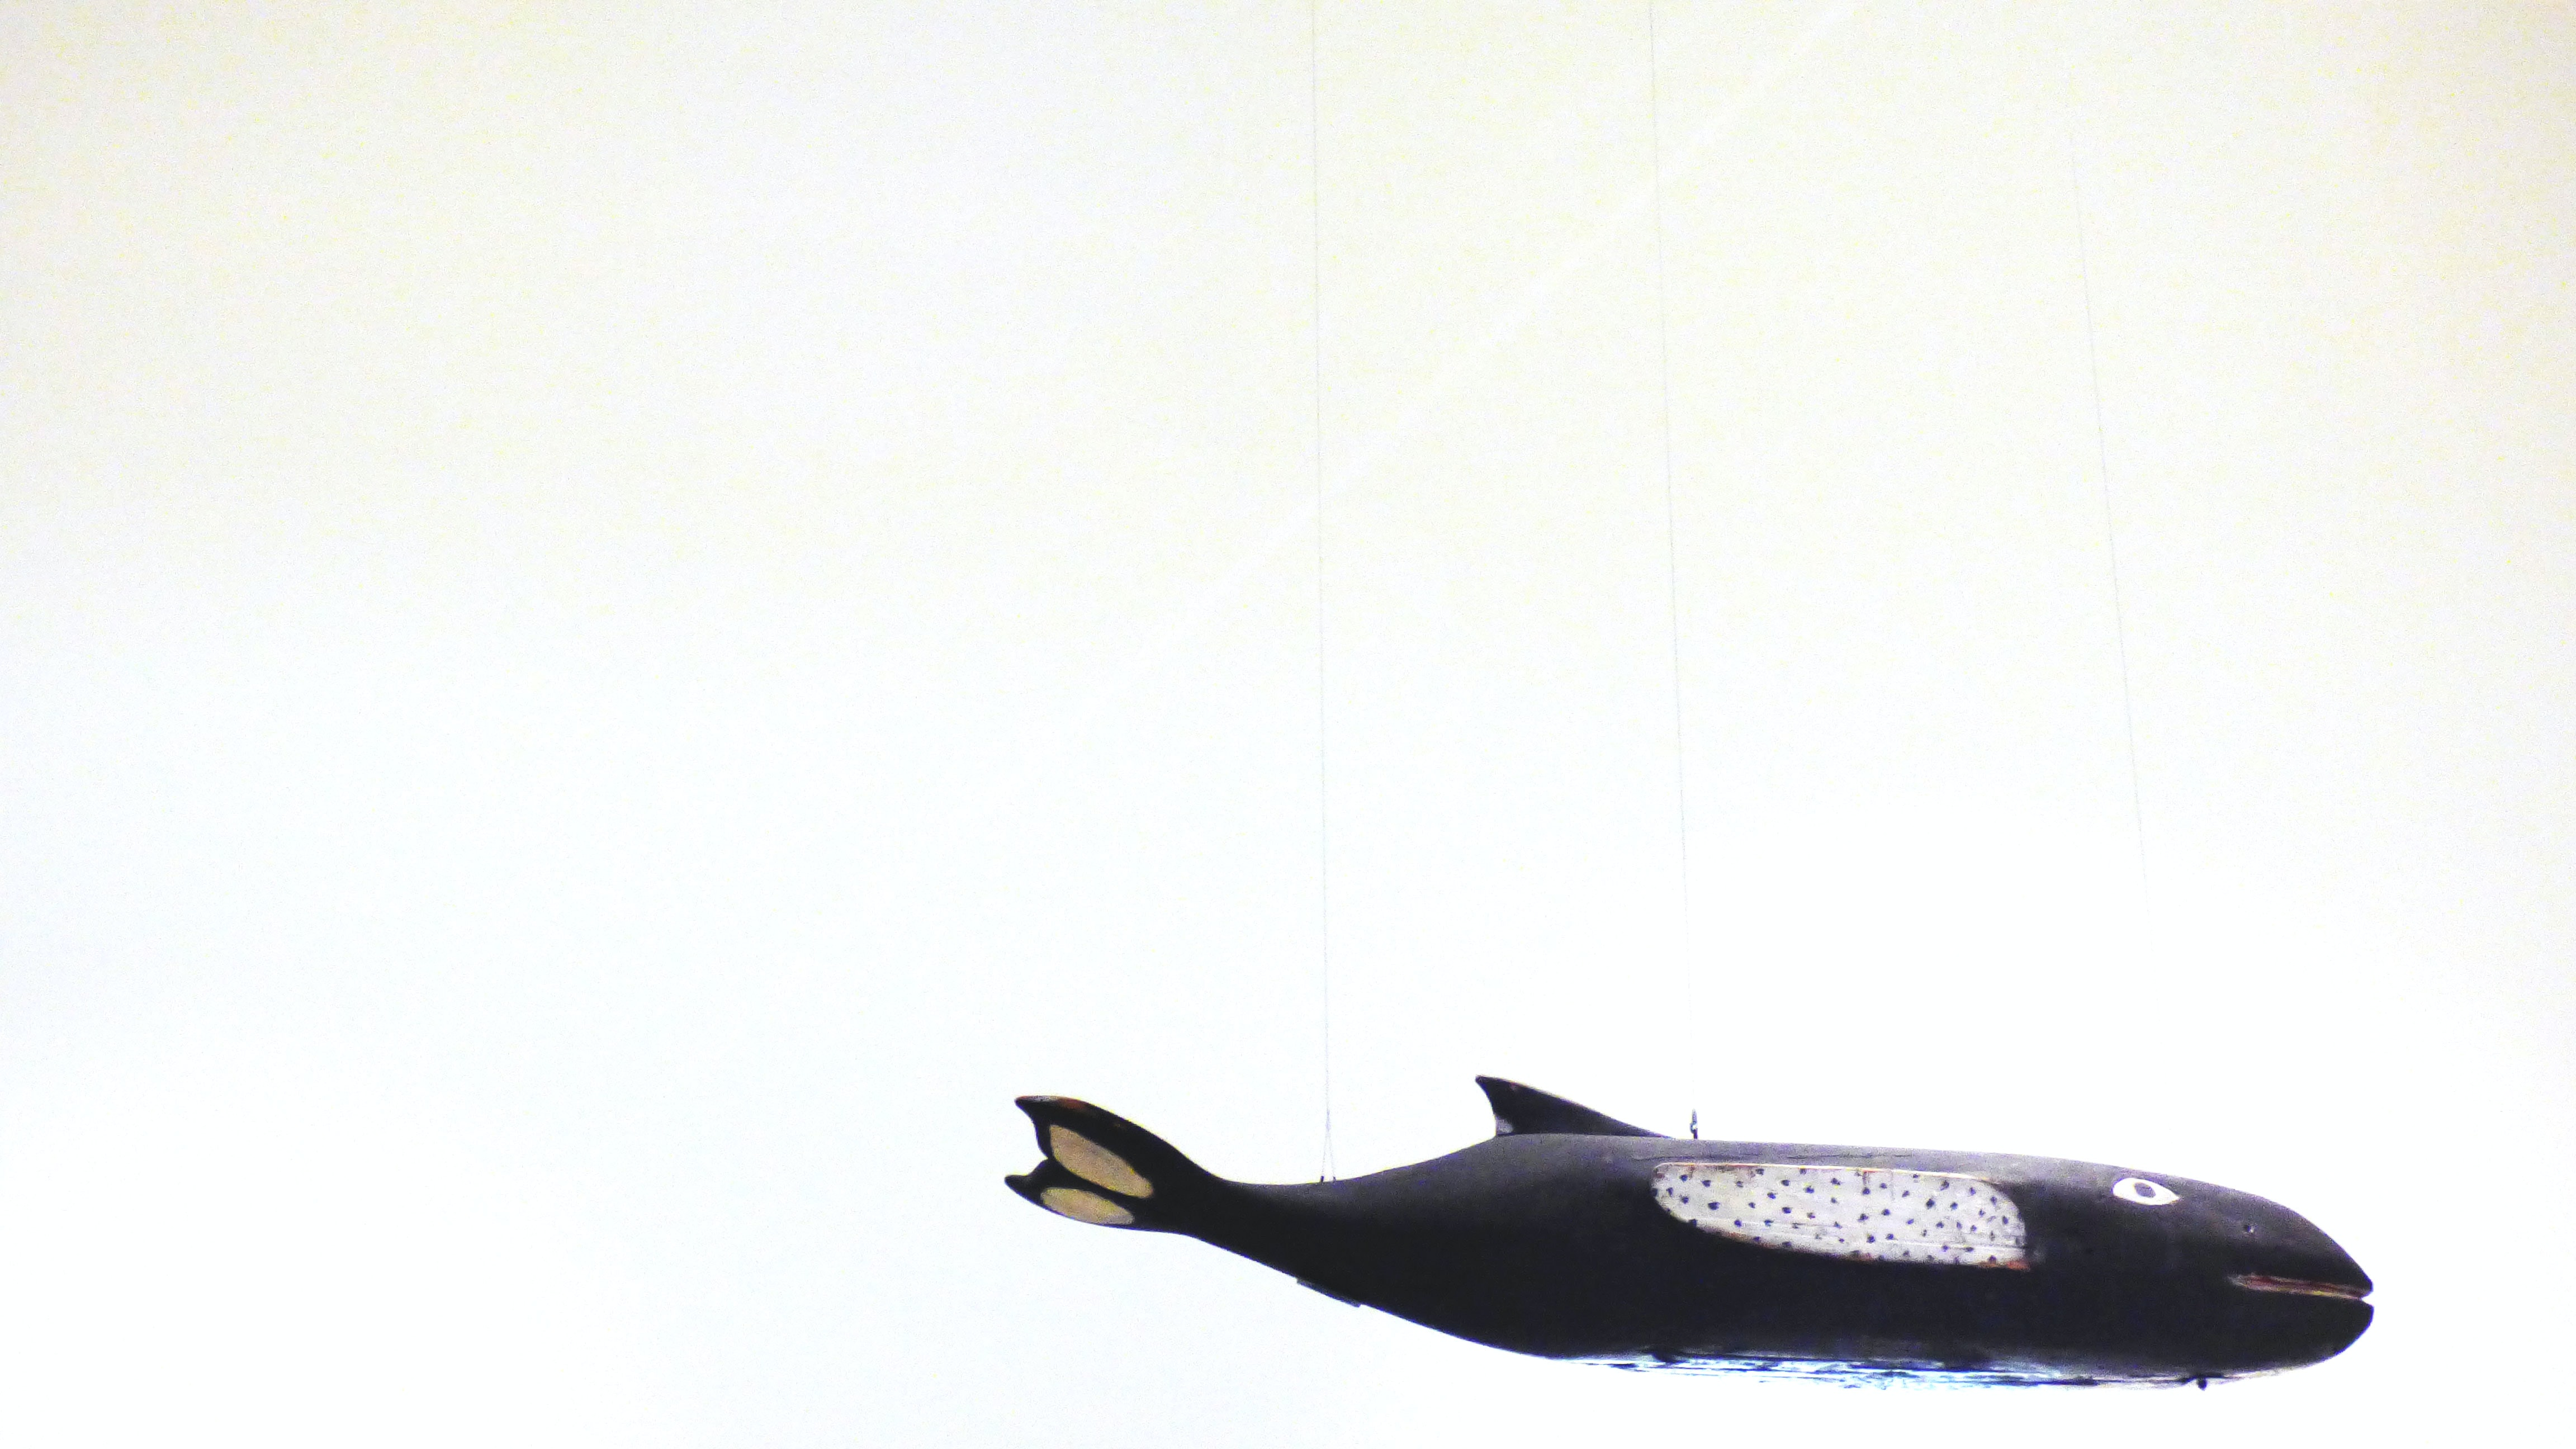 photo of black whale toy